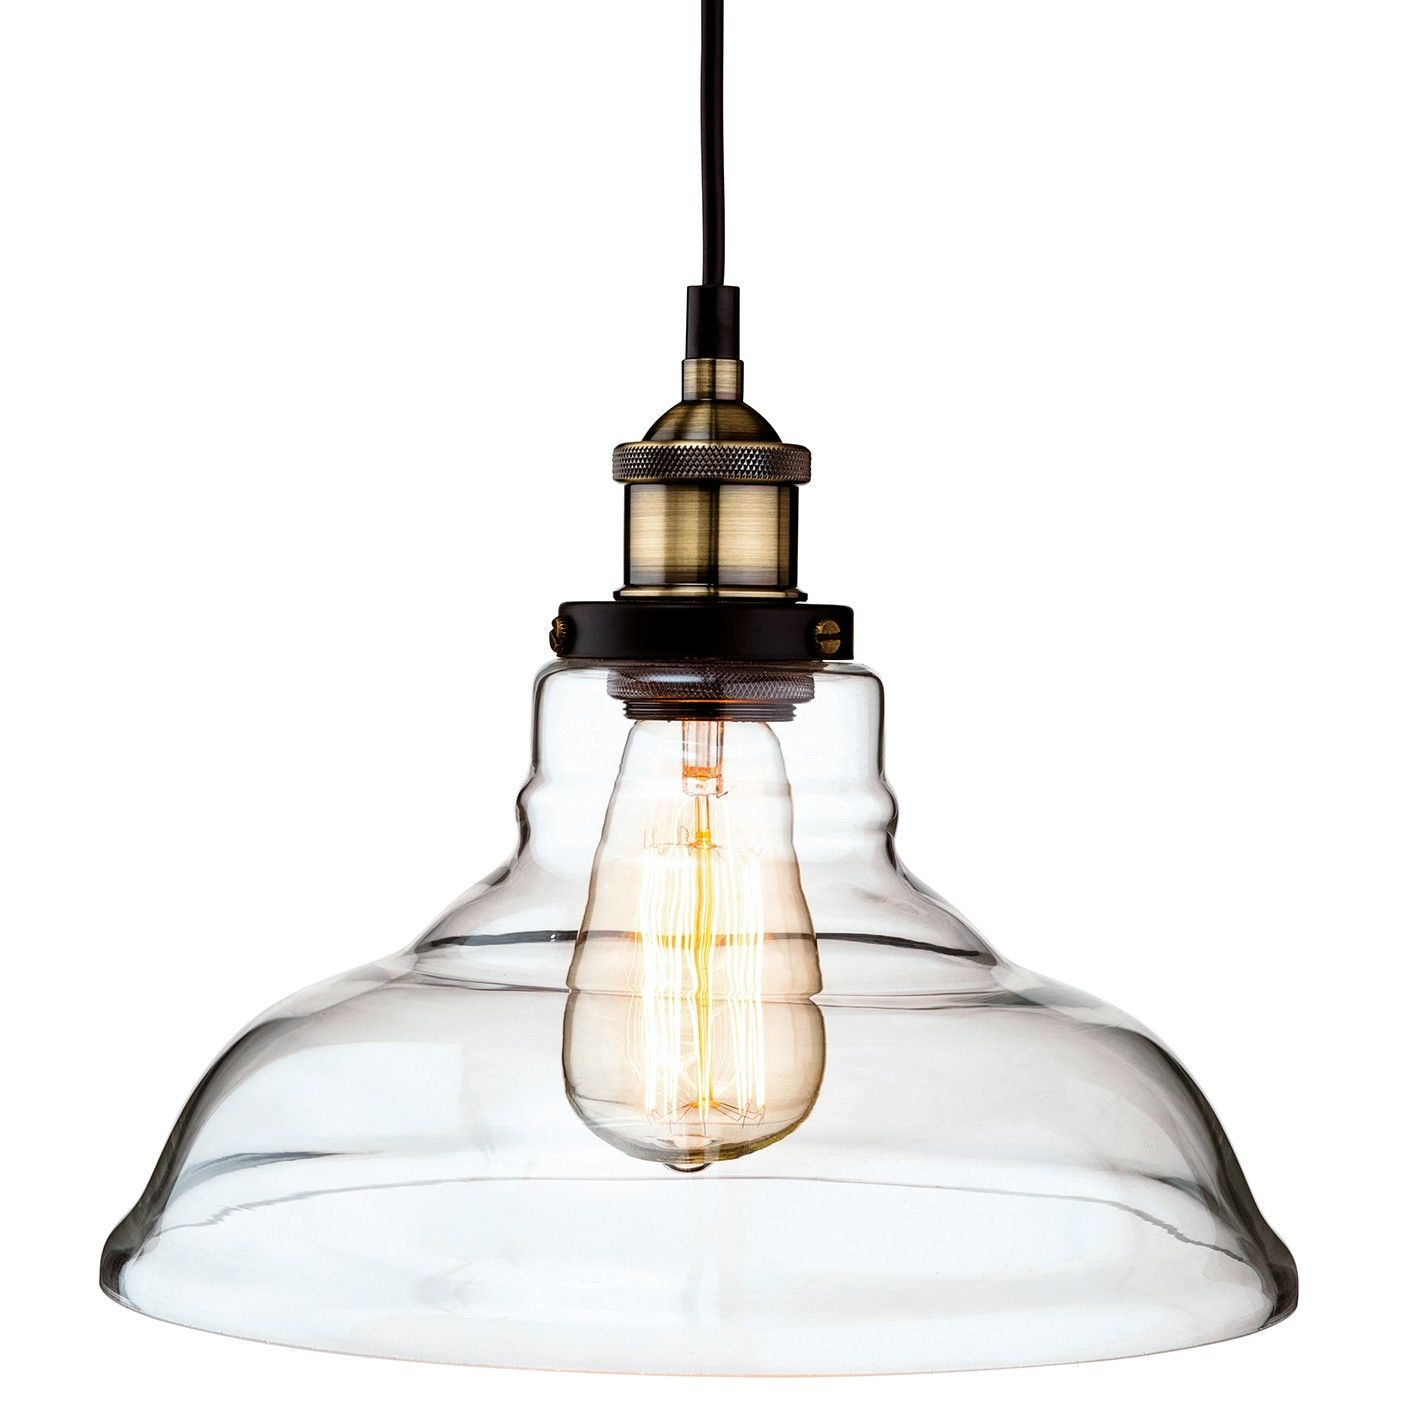 Lovely Bowl Pendant Light Fixture